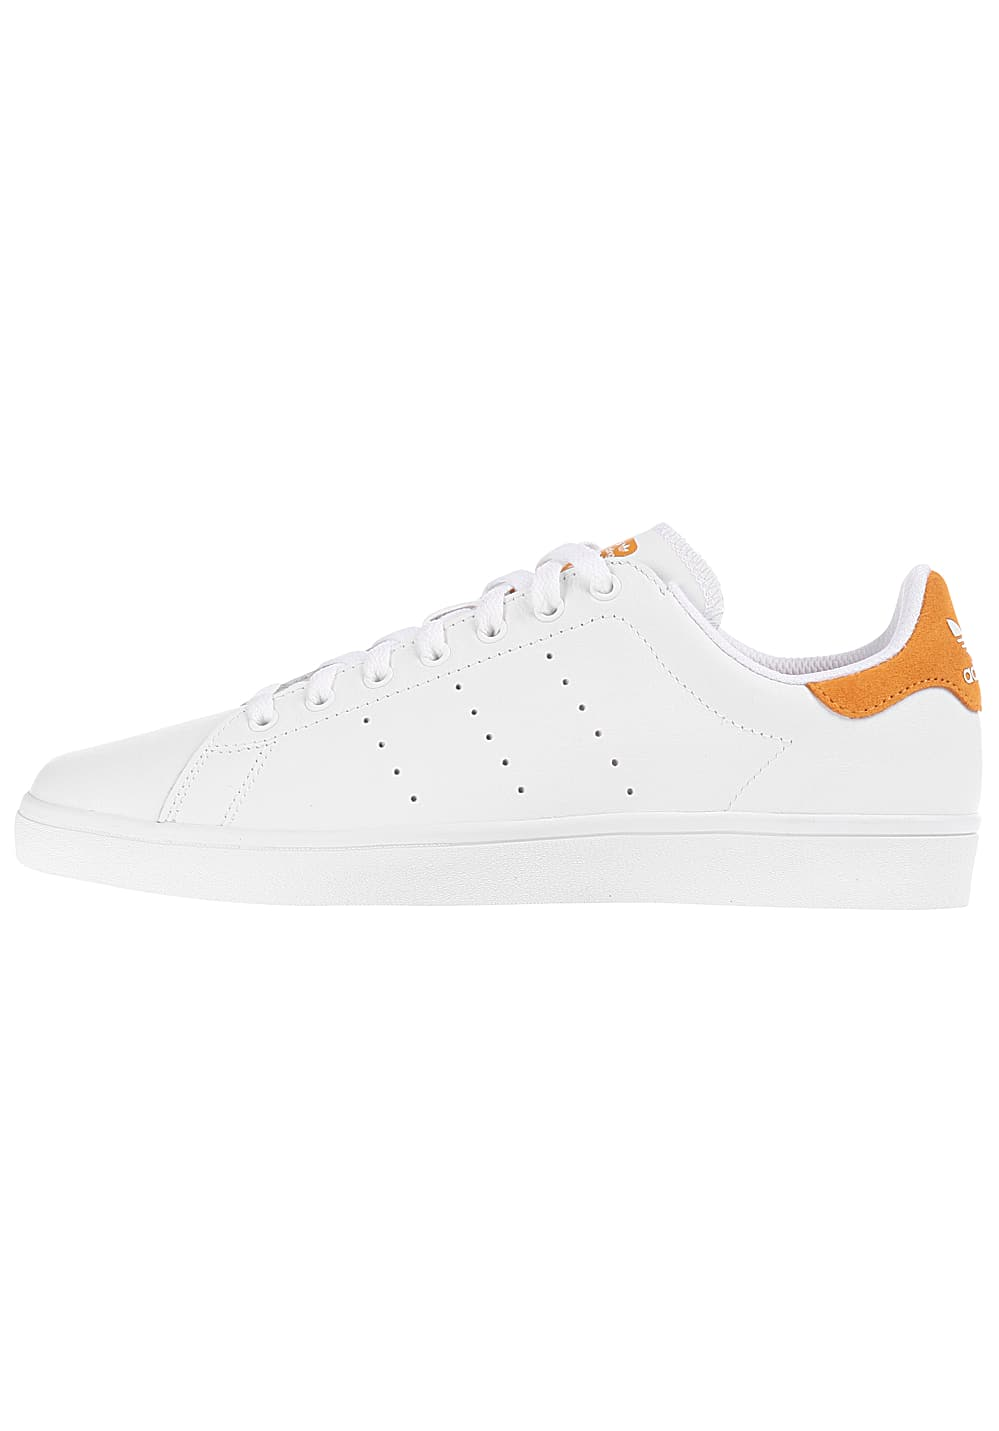 outlet store 58440 50b6c Adidas Skateboarding Stan Smith Vulc - Sneakers for Men ...